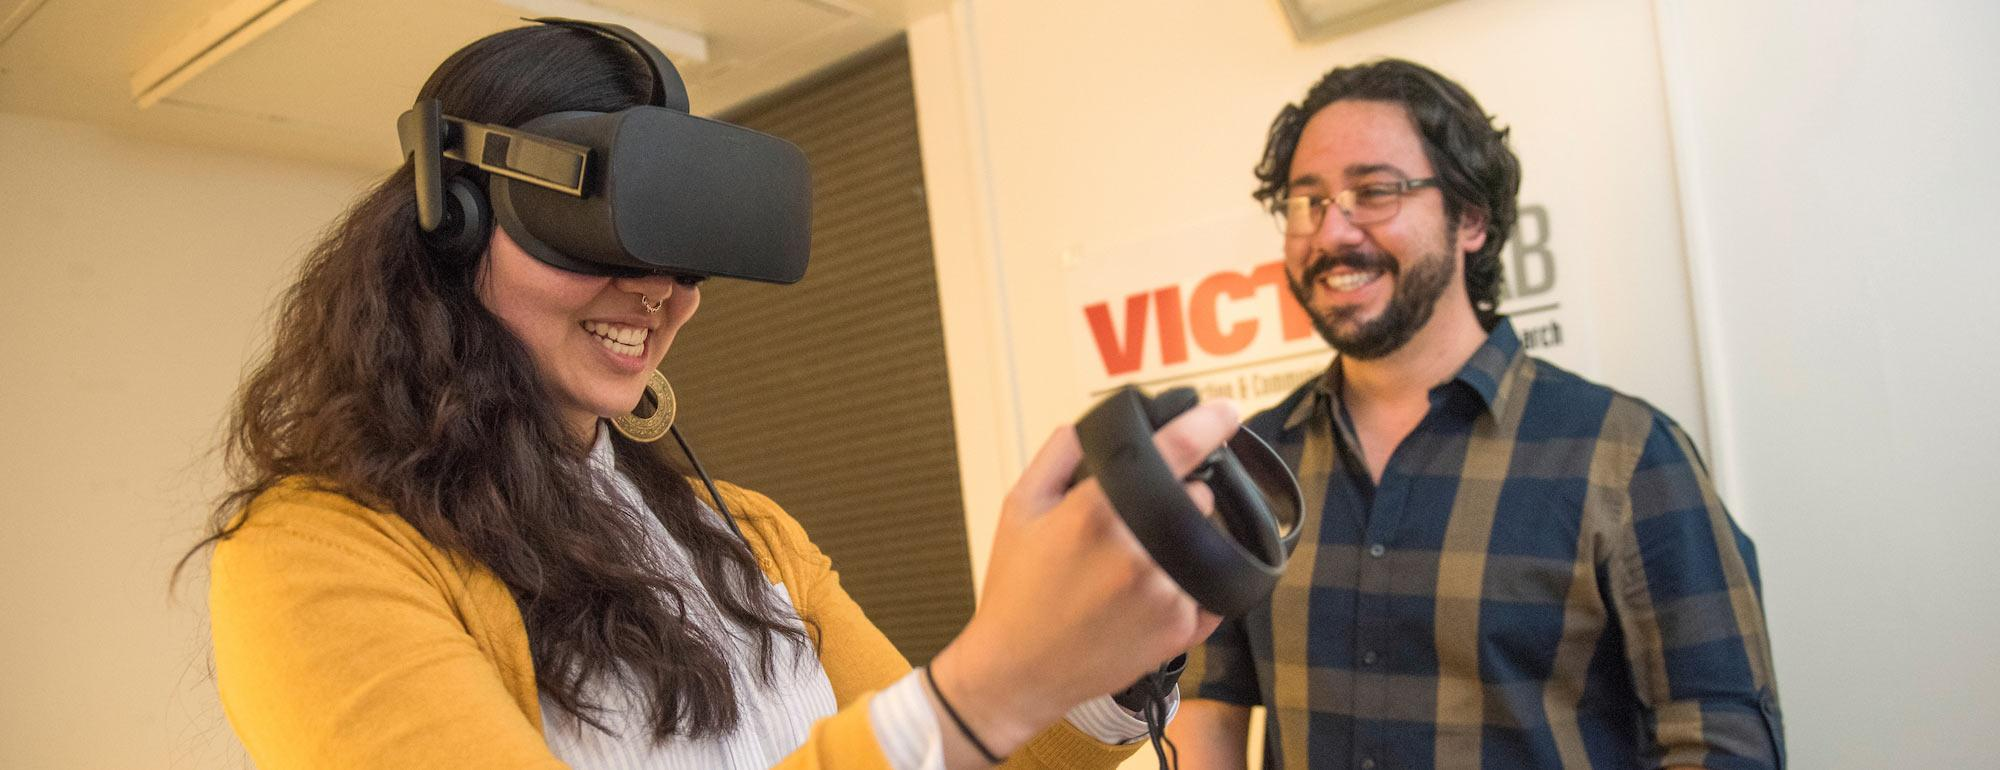 A student smiles while using a virtual reality set up.